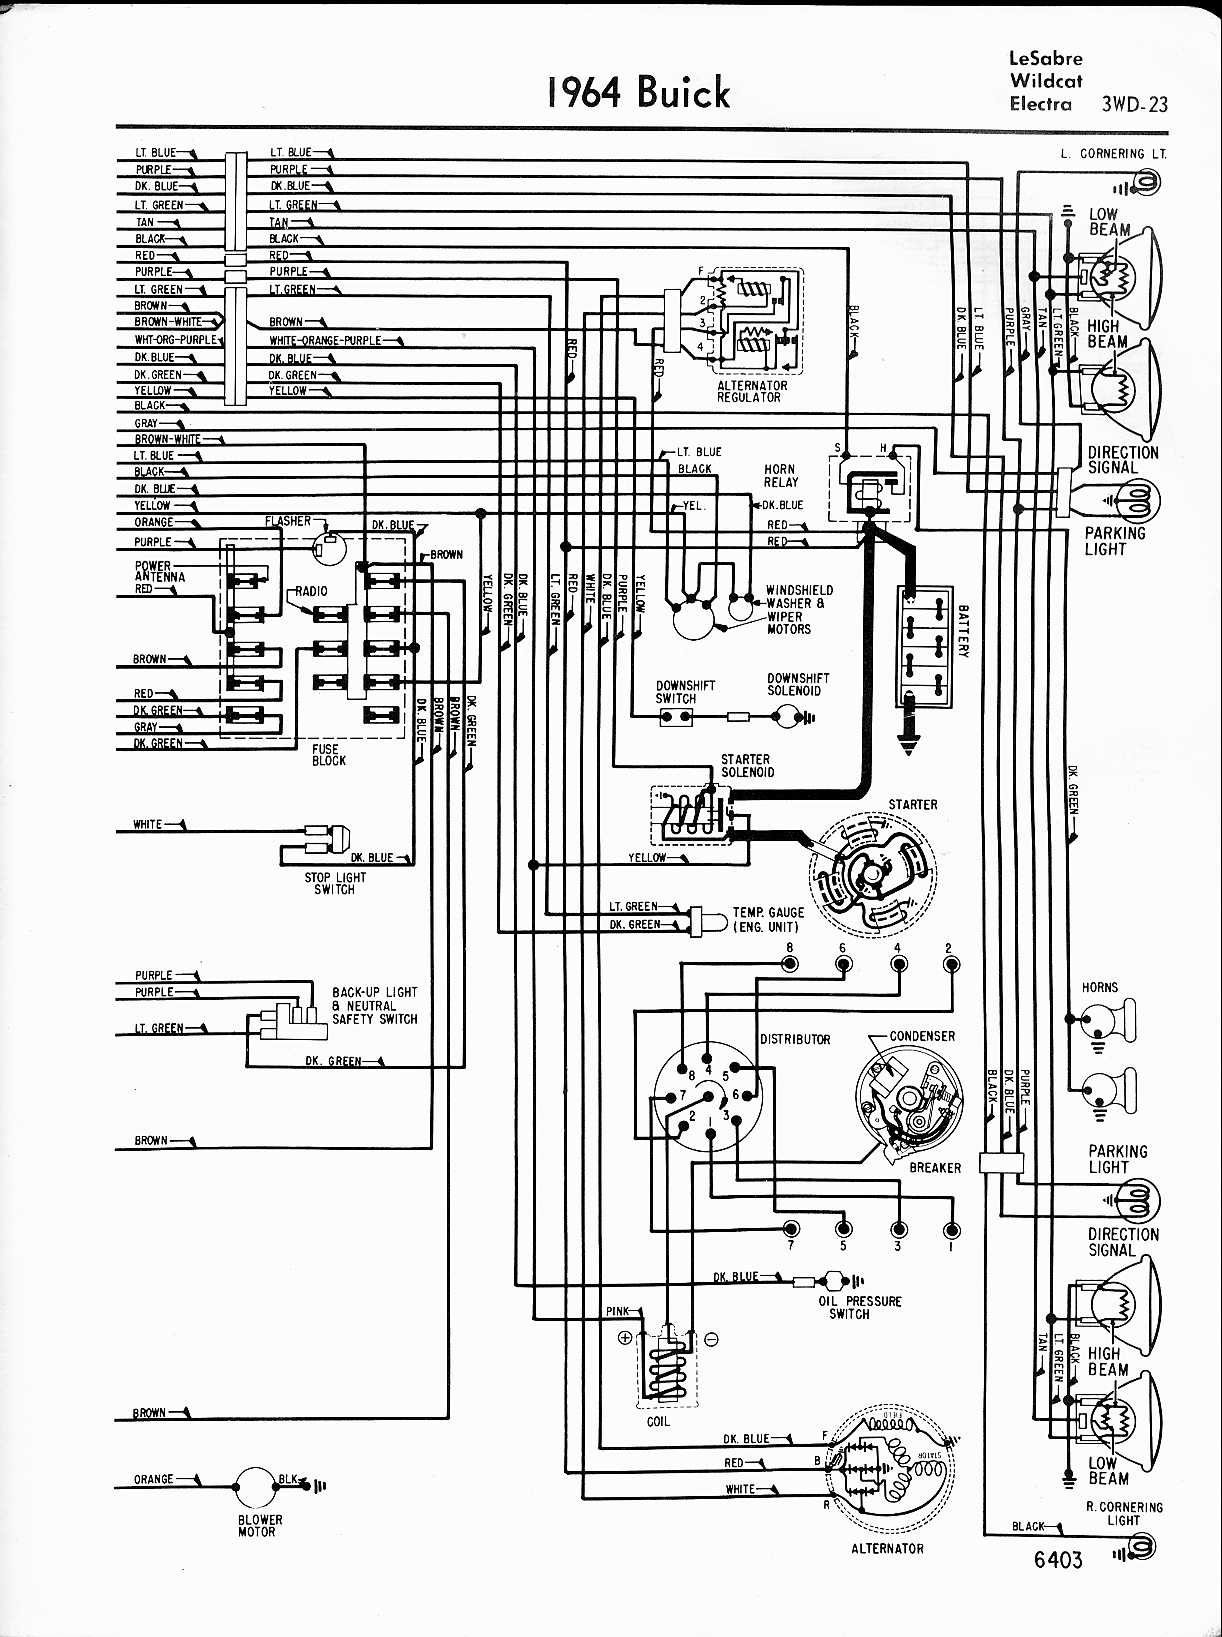 1990 Buick Lesabre Coil Wiring Diagram Diagrams Box 2001 Caravan 1957 1965 Dodge Spirit